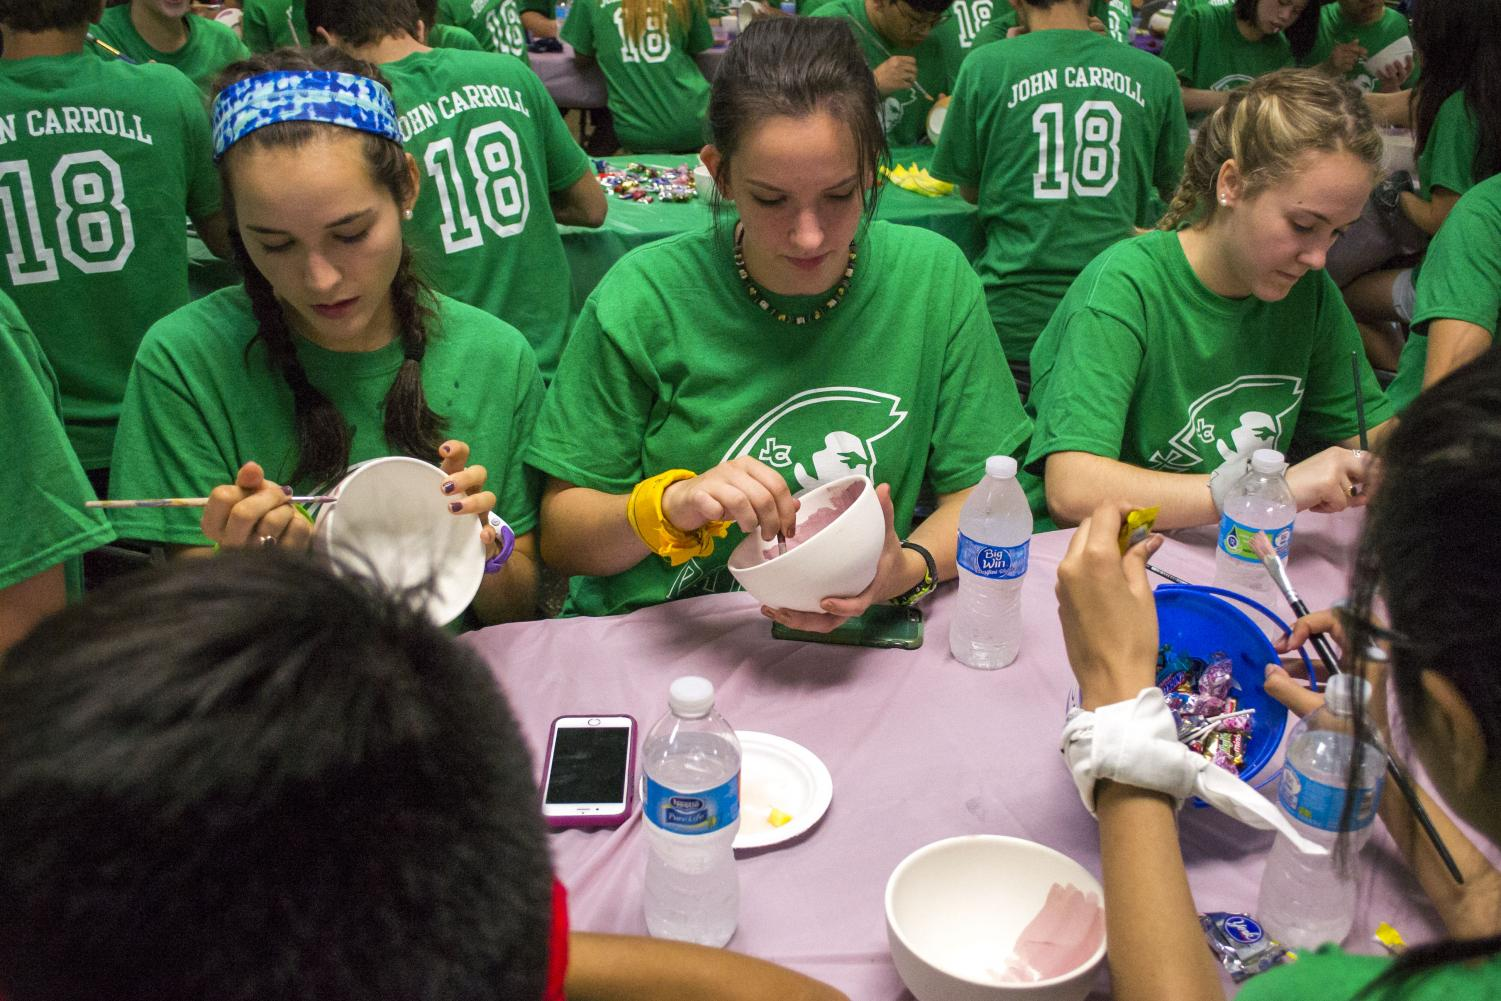 Seniors Laura Amrhein, Abby Bryant, and Caitlyn Trent paint bowls during Senior Unity Day on Friday, Sept. 22. More service opportunities should be offered where students have the opportunity to bond during the activity.